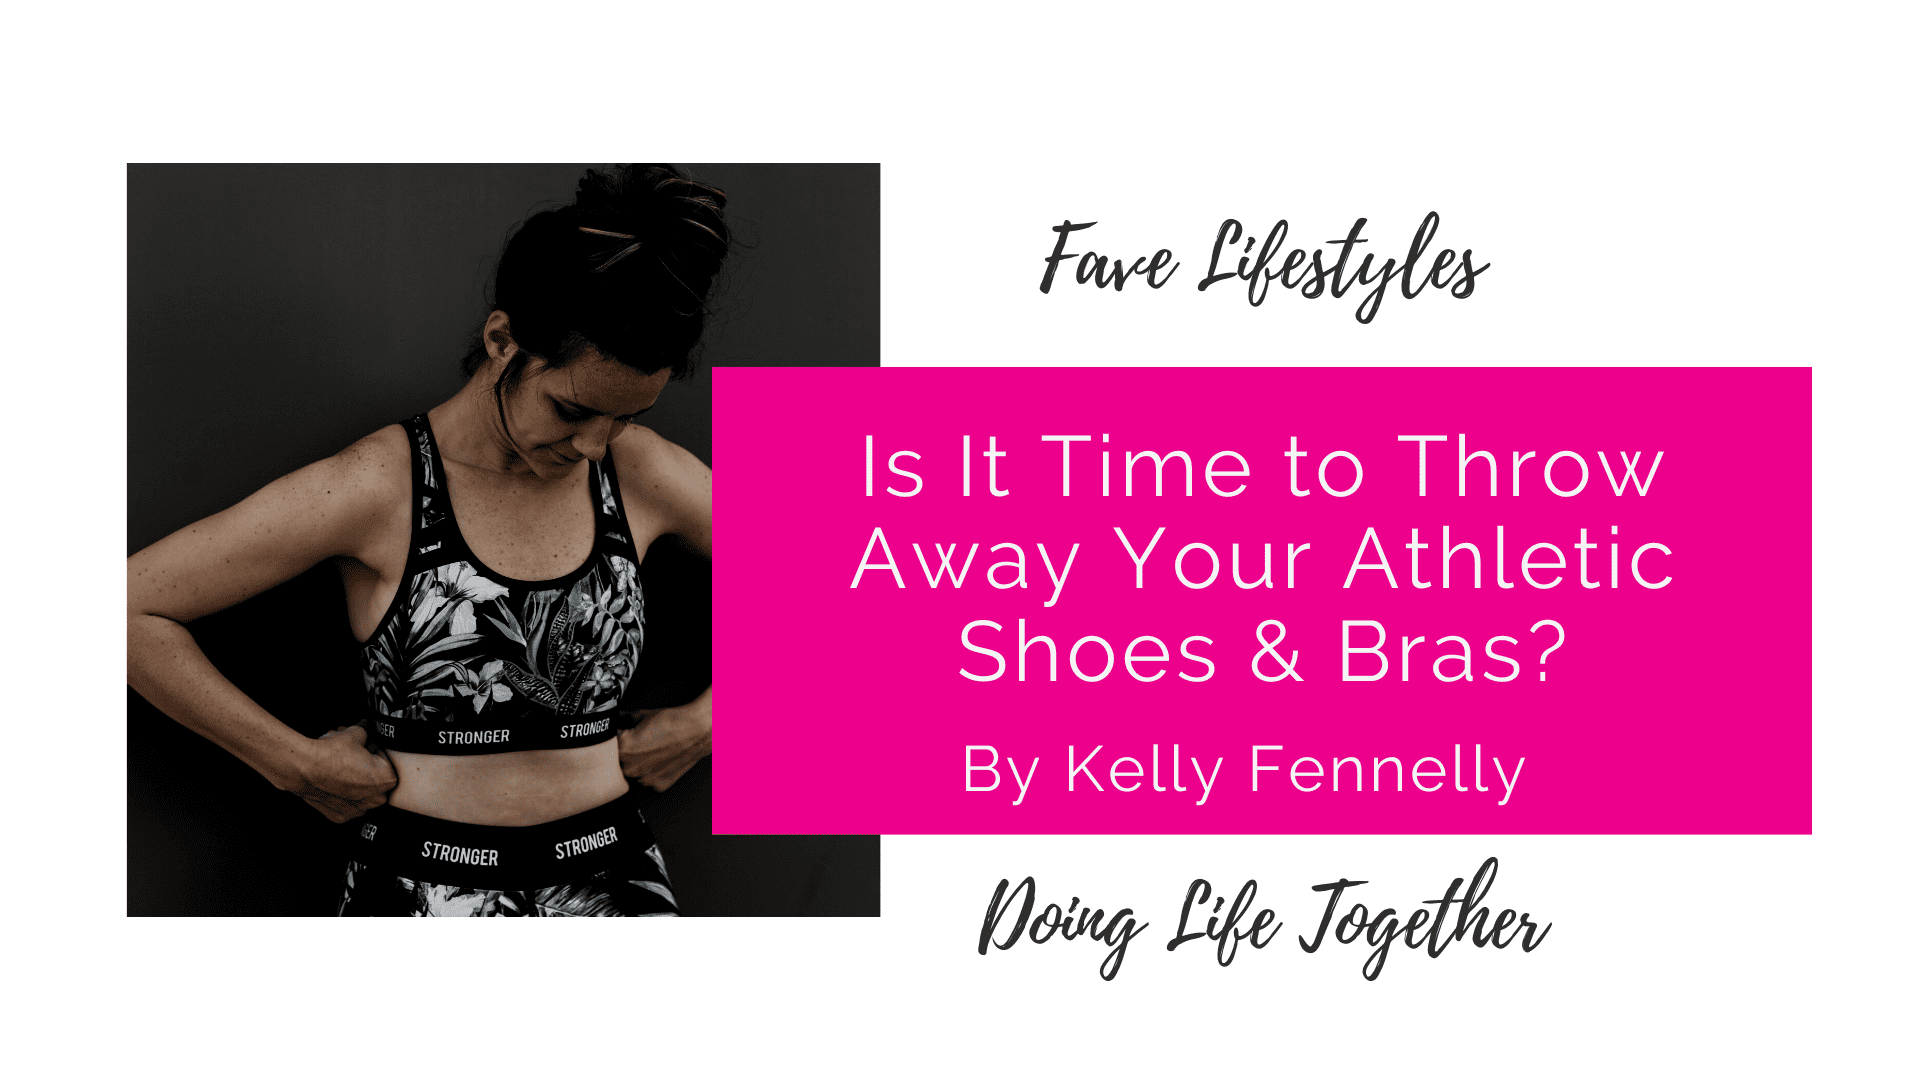 Is It Time to Throw Away Athletic Shoes & Bras?